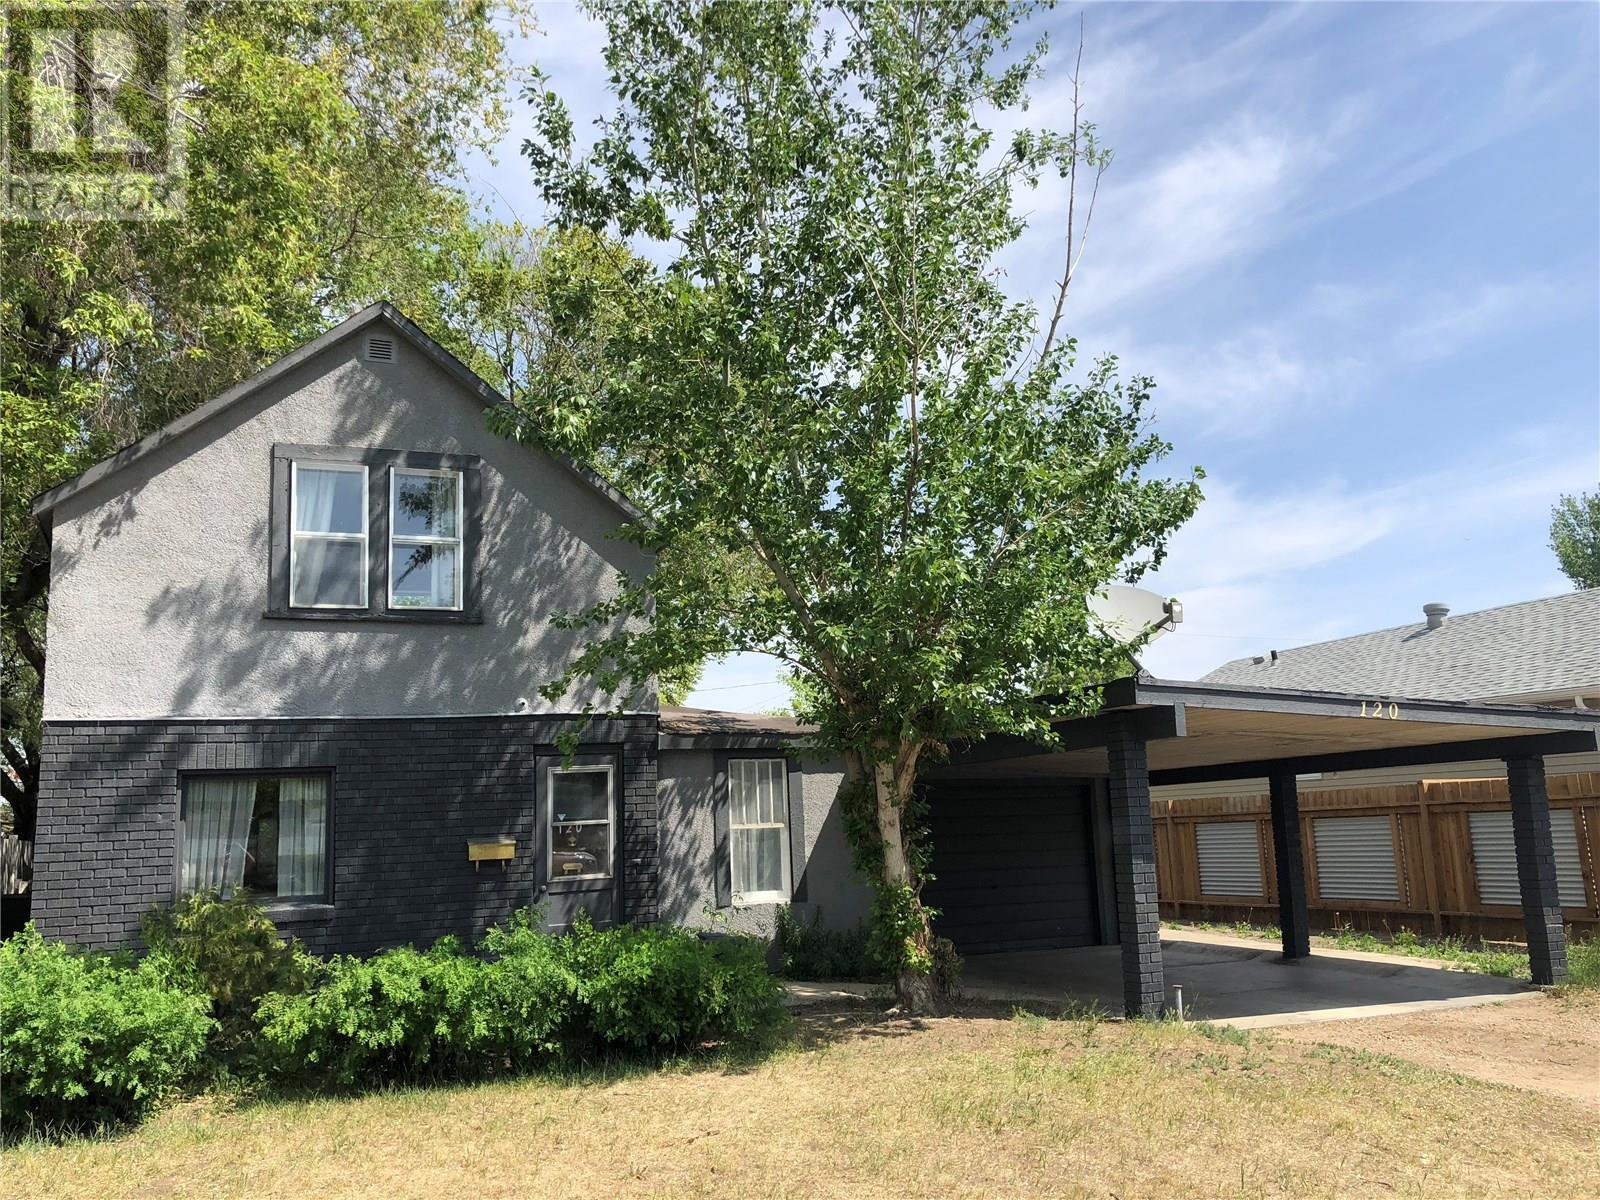 Removed: 120 Main Street, Warman,  - Removed on 2019-07-11 06:12:31